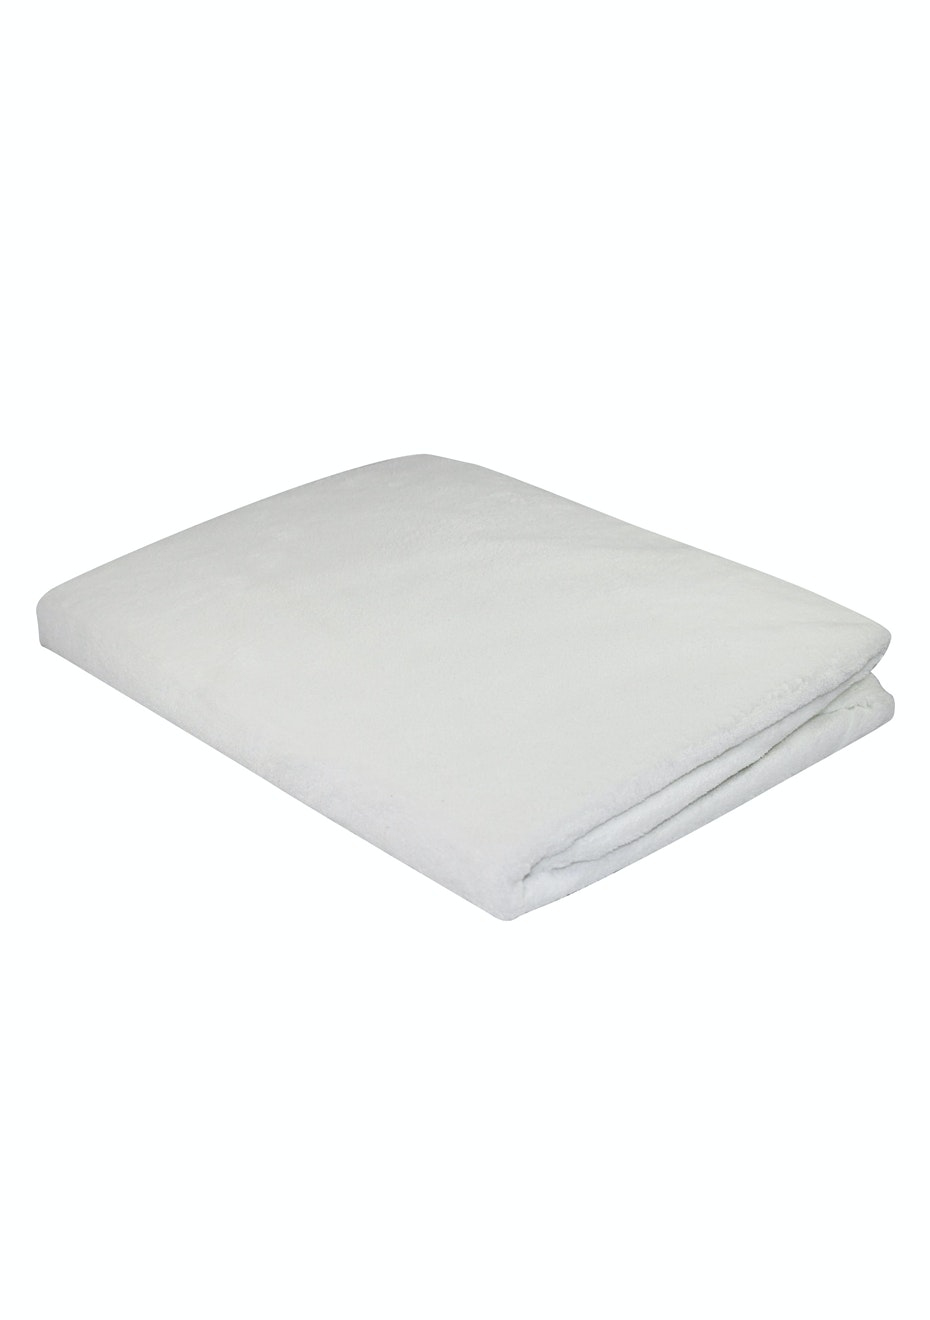 Fibresmart Plush Waterproof Mattress Protector - DOUBLE BED - Fully Fitted